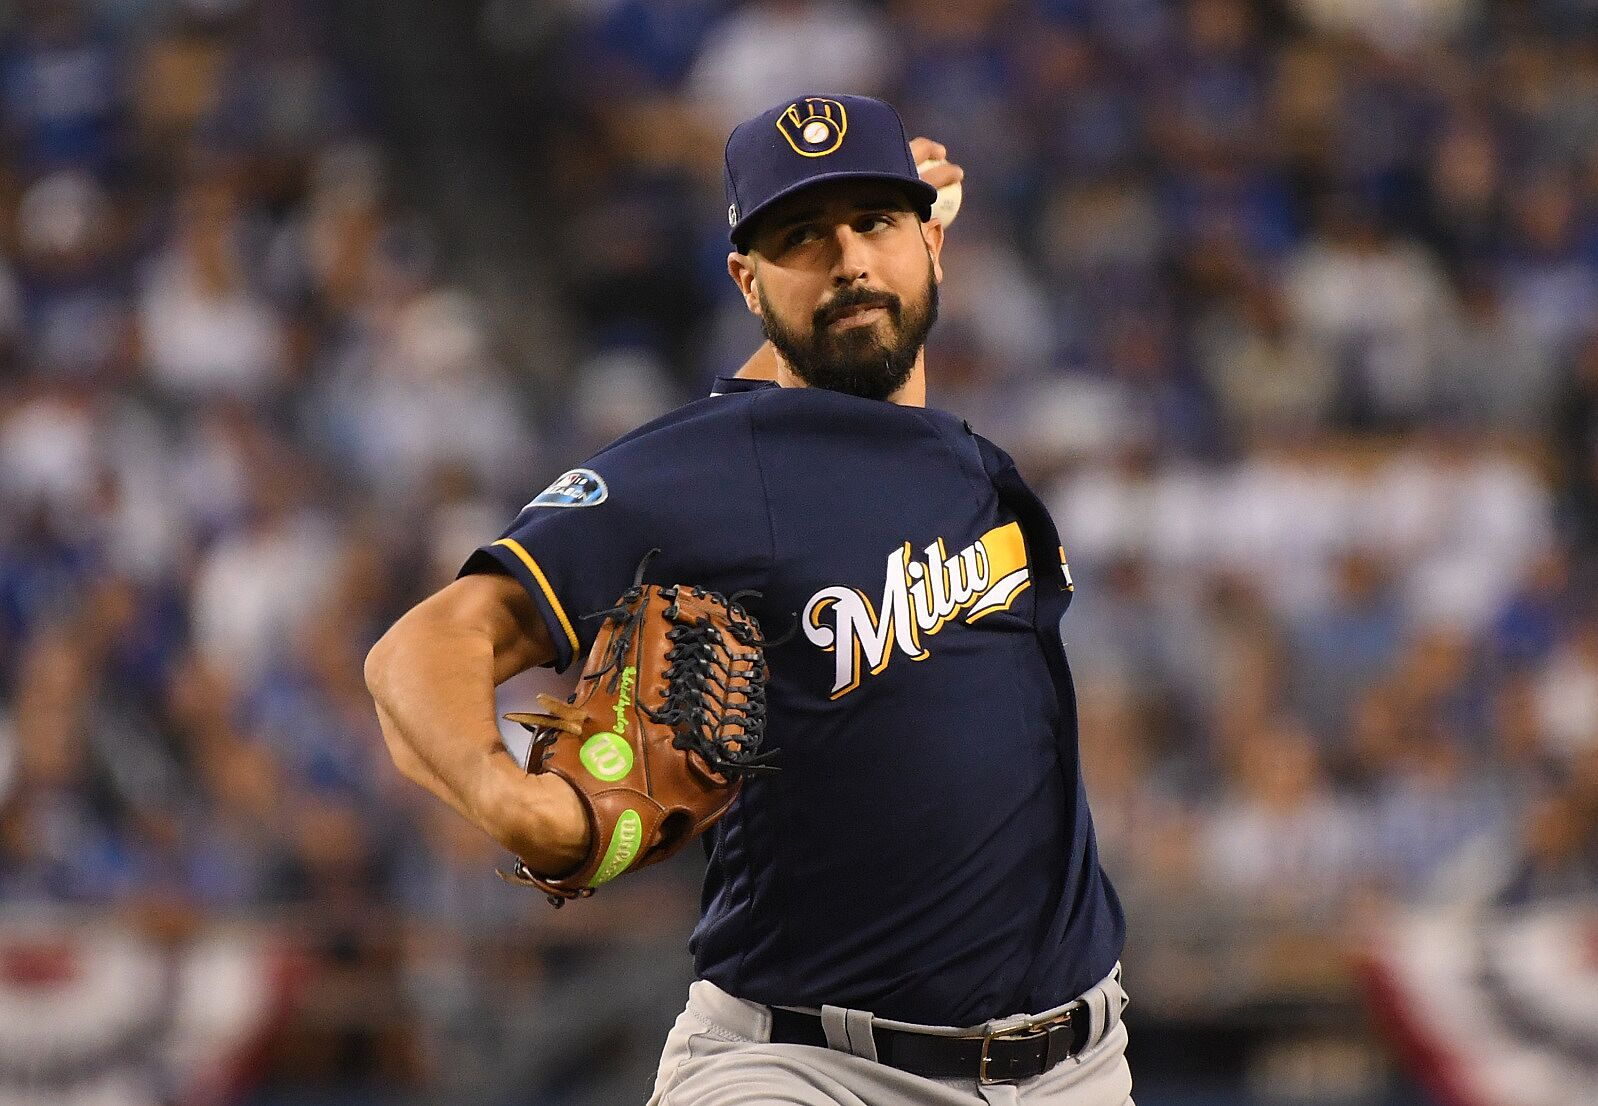 Milwaukee Brewers: How MLB Rule Changes Will Impact The Crew